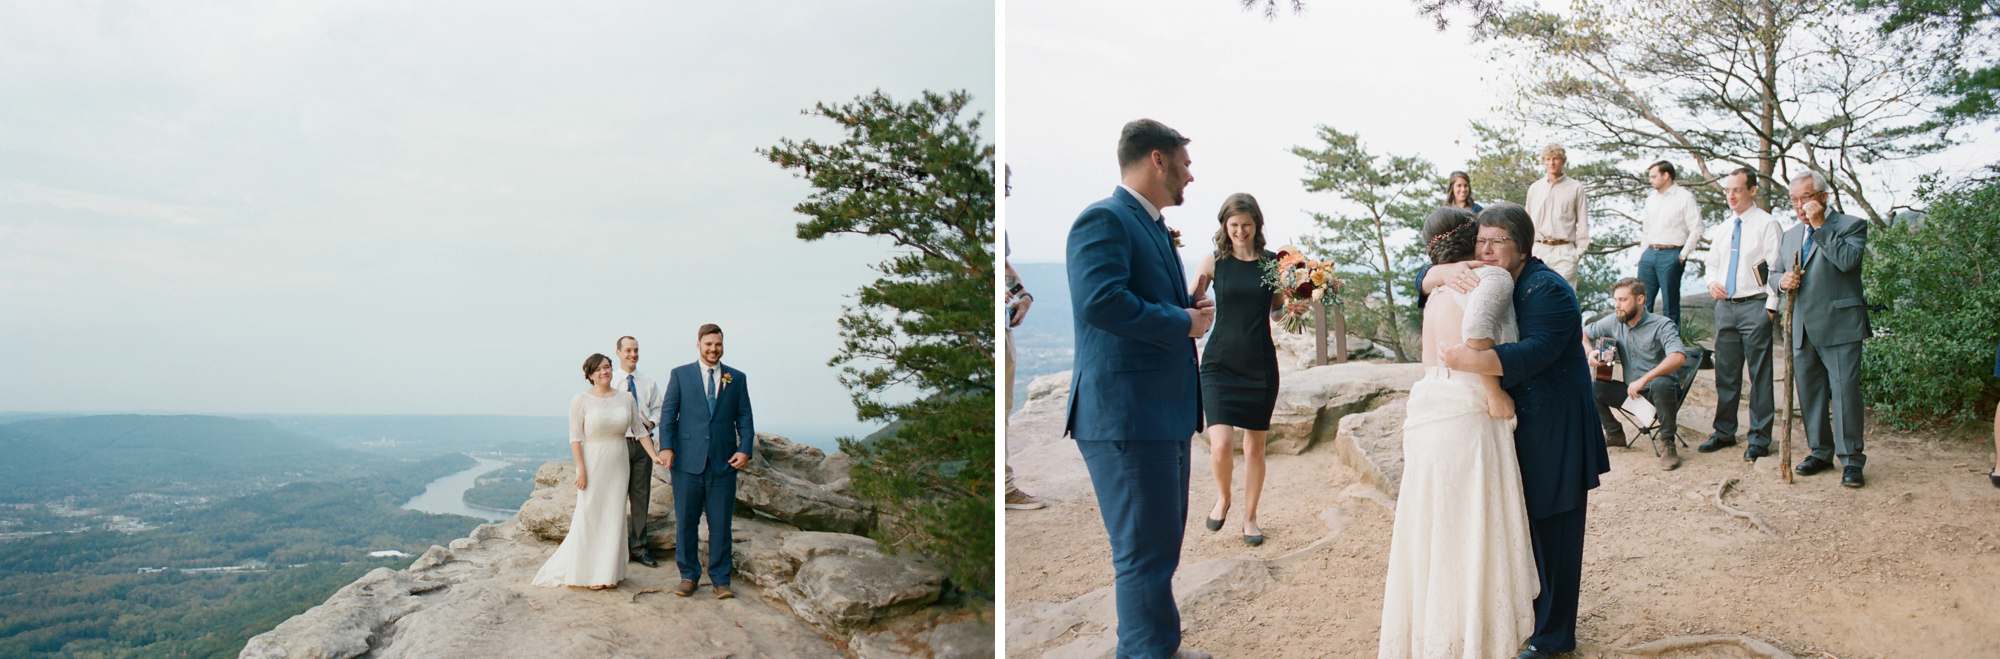 chattanooga-wedding-photographer_0032